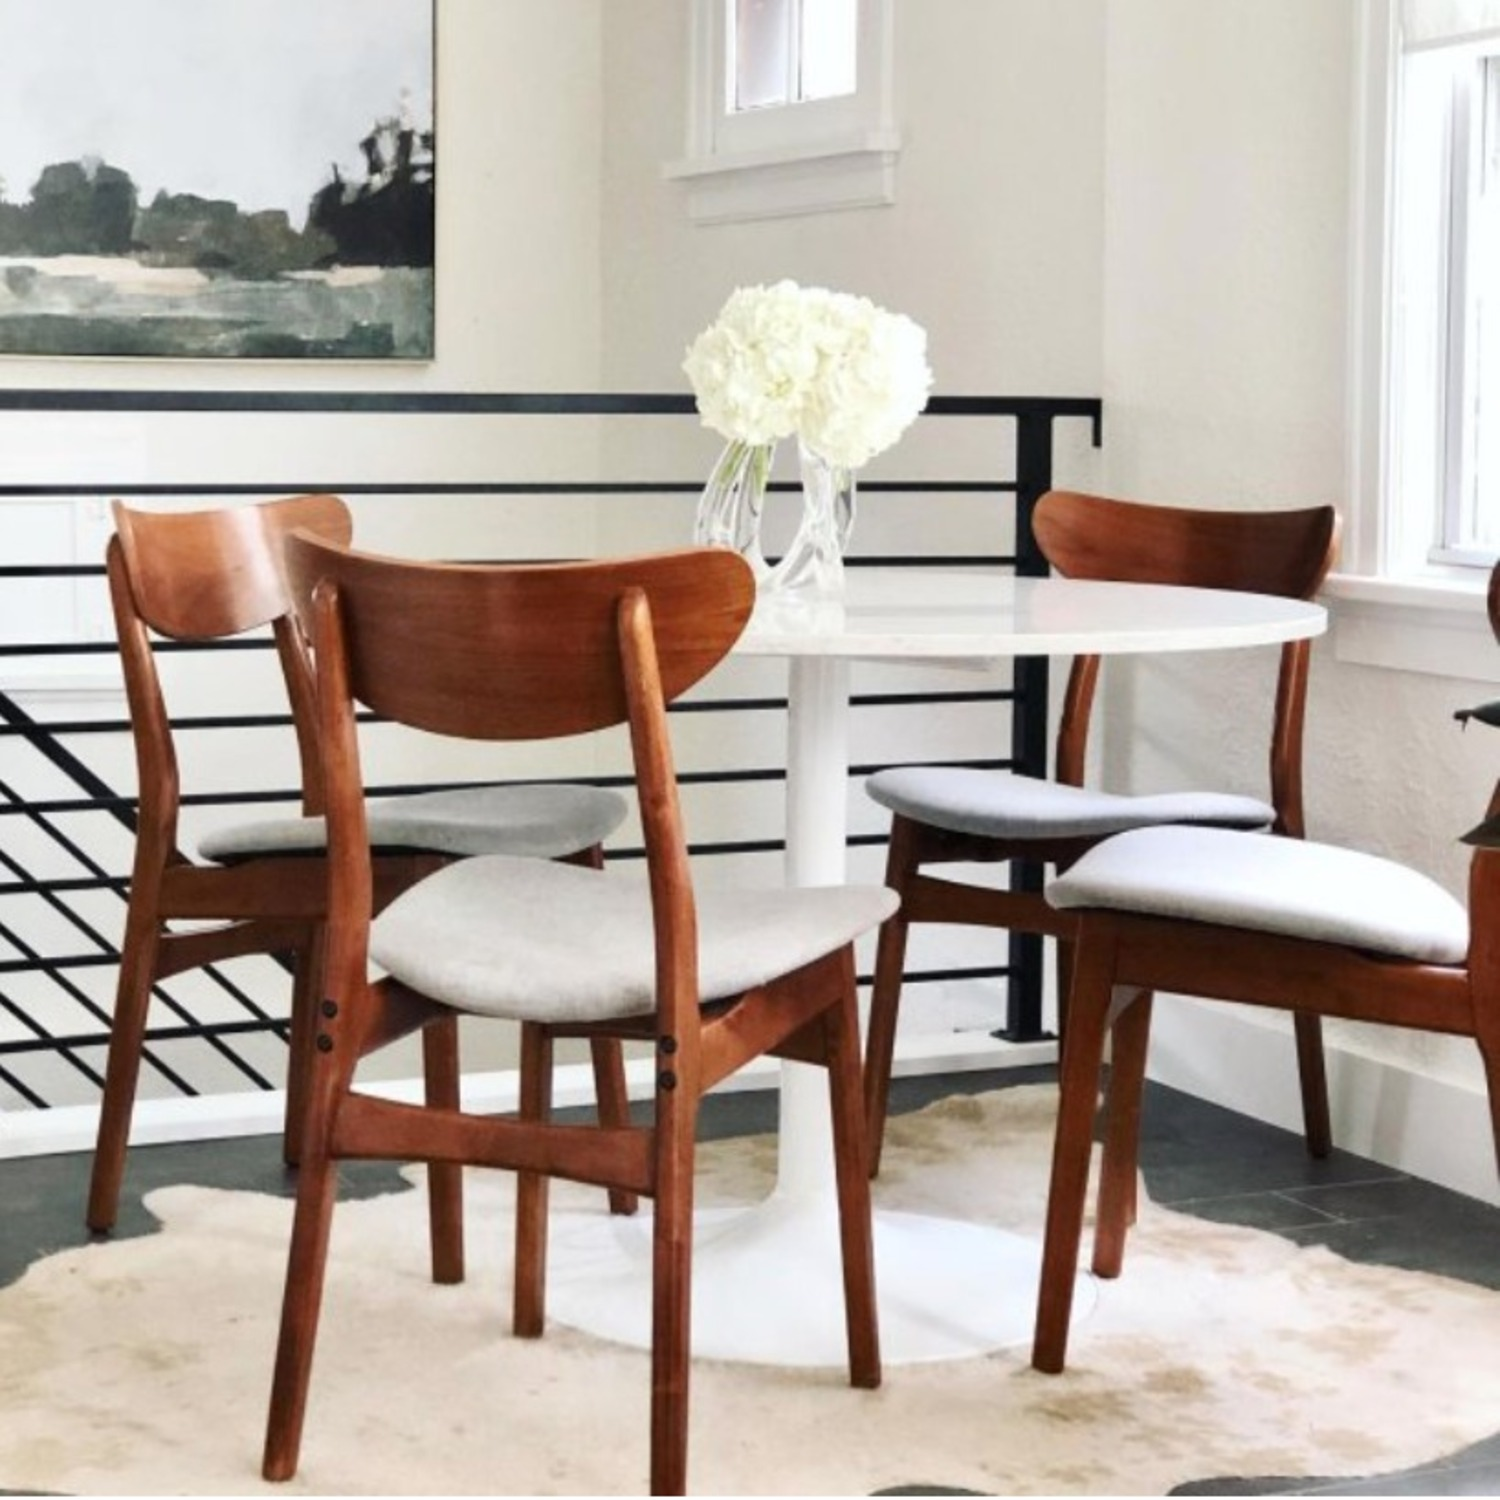 West Elm Classic Caf Upholstered Dining Chair- Set of 2 - image-5